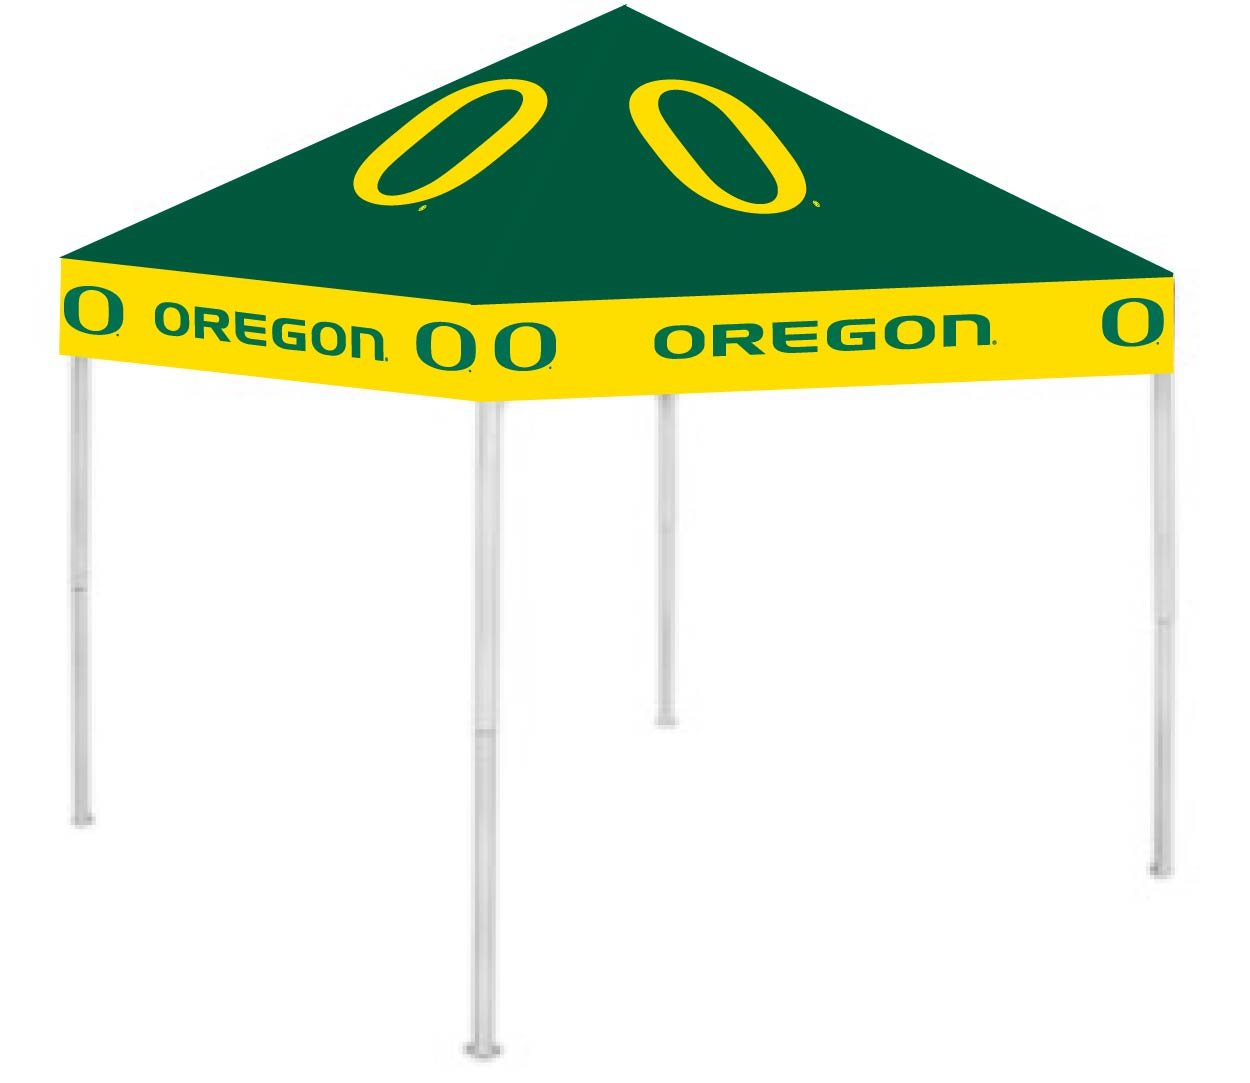 Rivalry RV326-5000 9 x 9 Oregon Ducks NCCA Ultimate Tailgate Canopy B003XKDBKU 9 x 9|オレゴンダックス オレゴンダックス 9 x 9